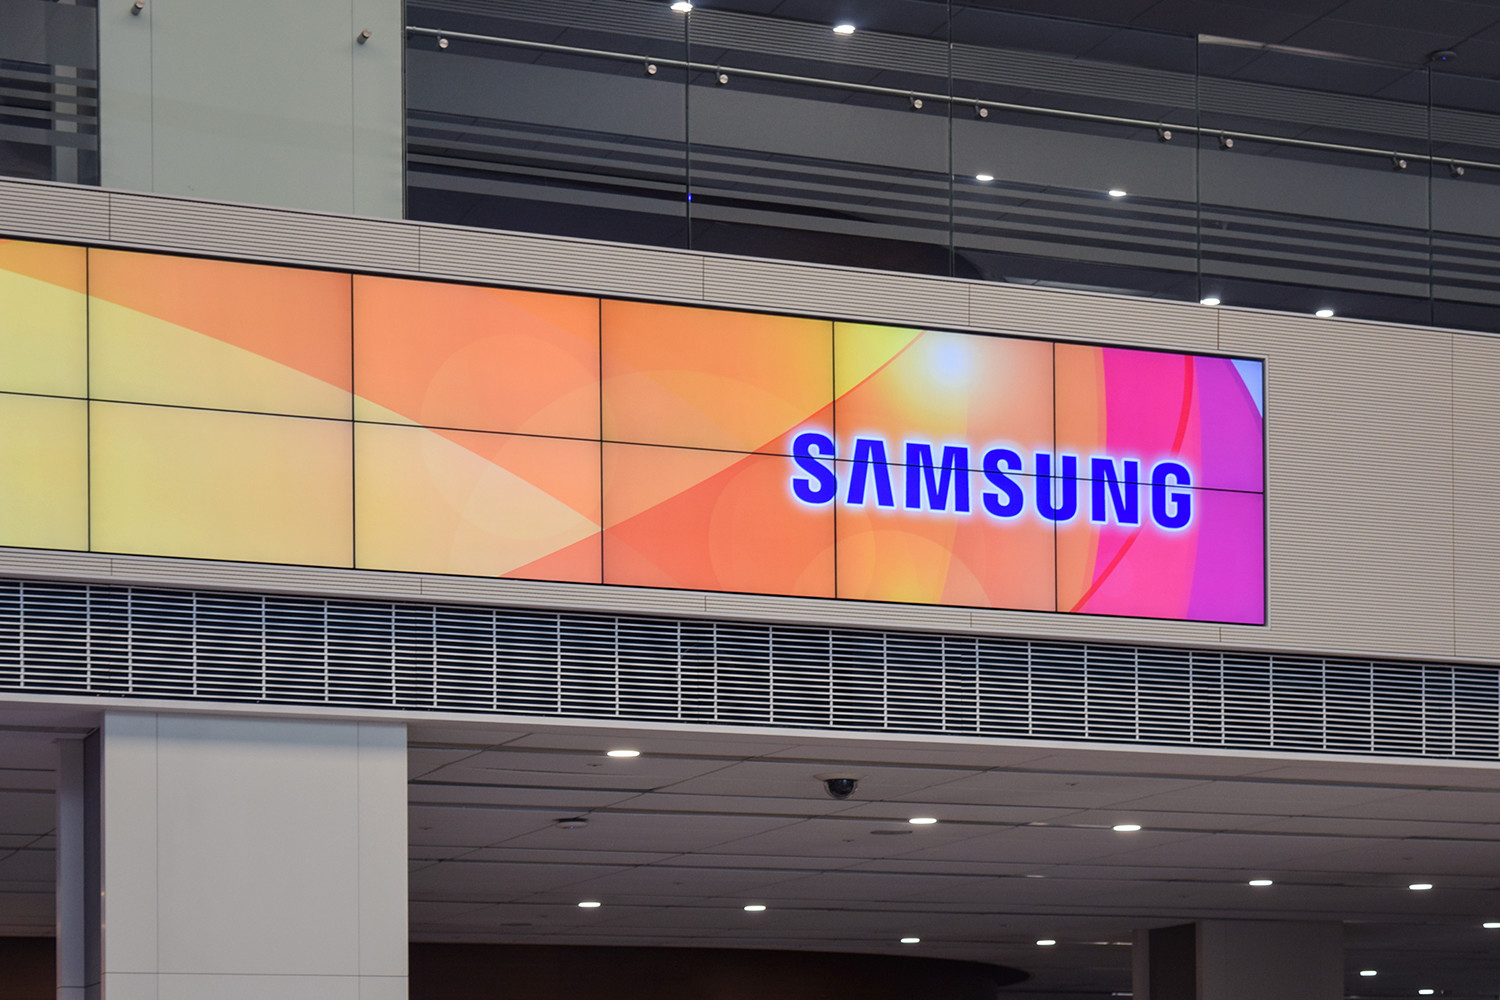 Samsung's Tizen operating system is reportedly a hacker's dream